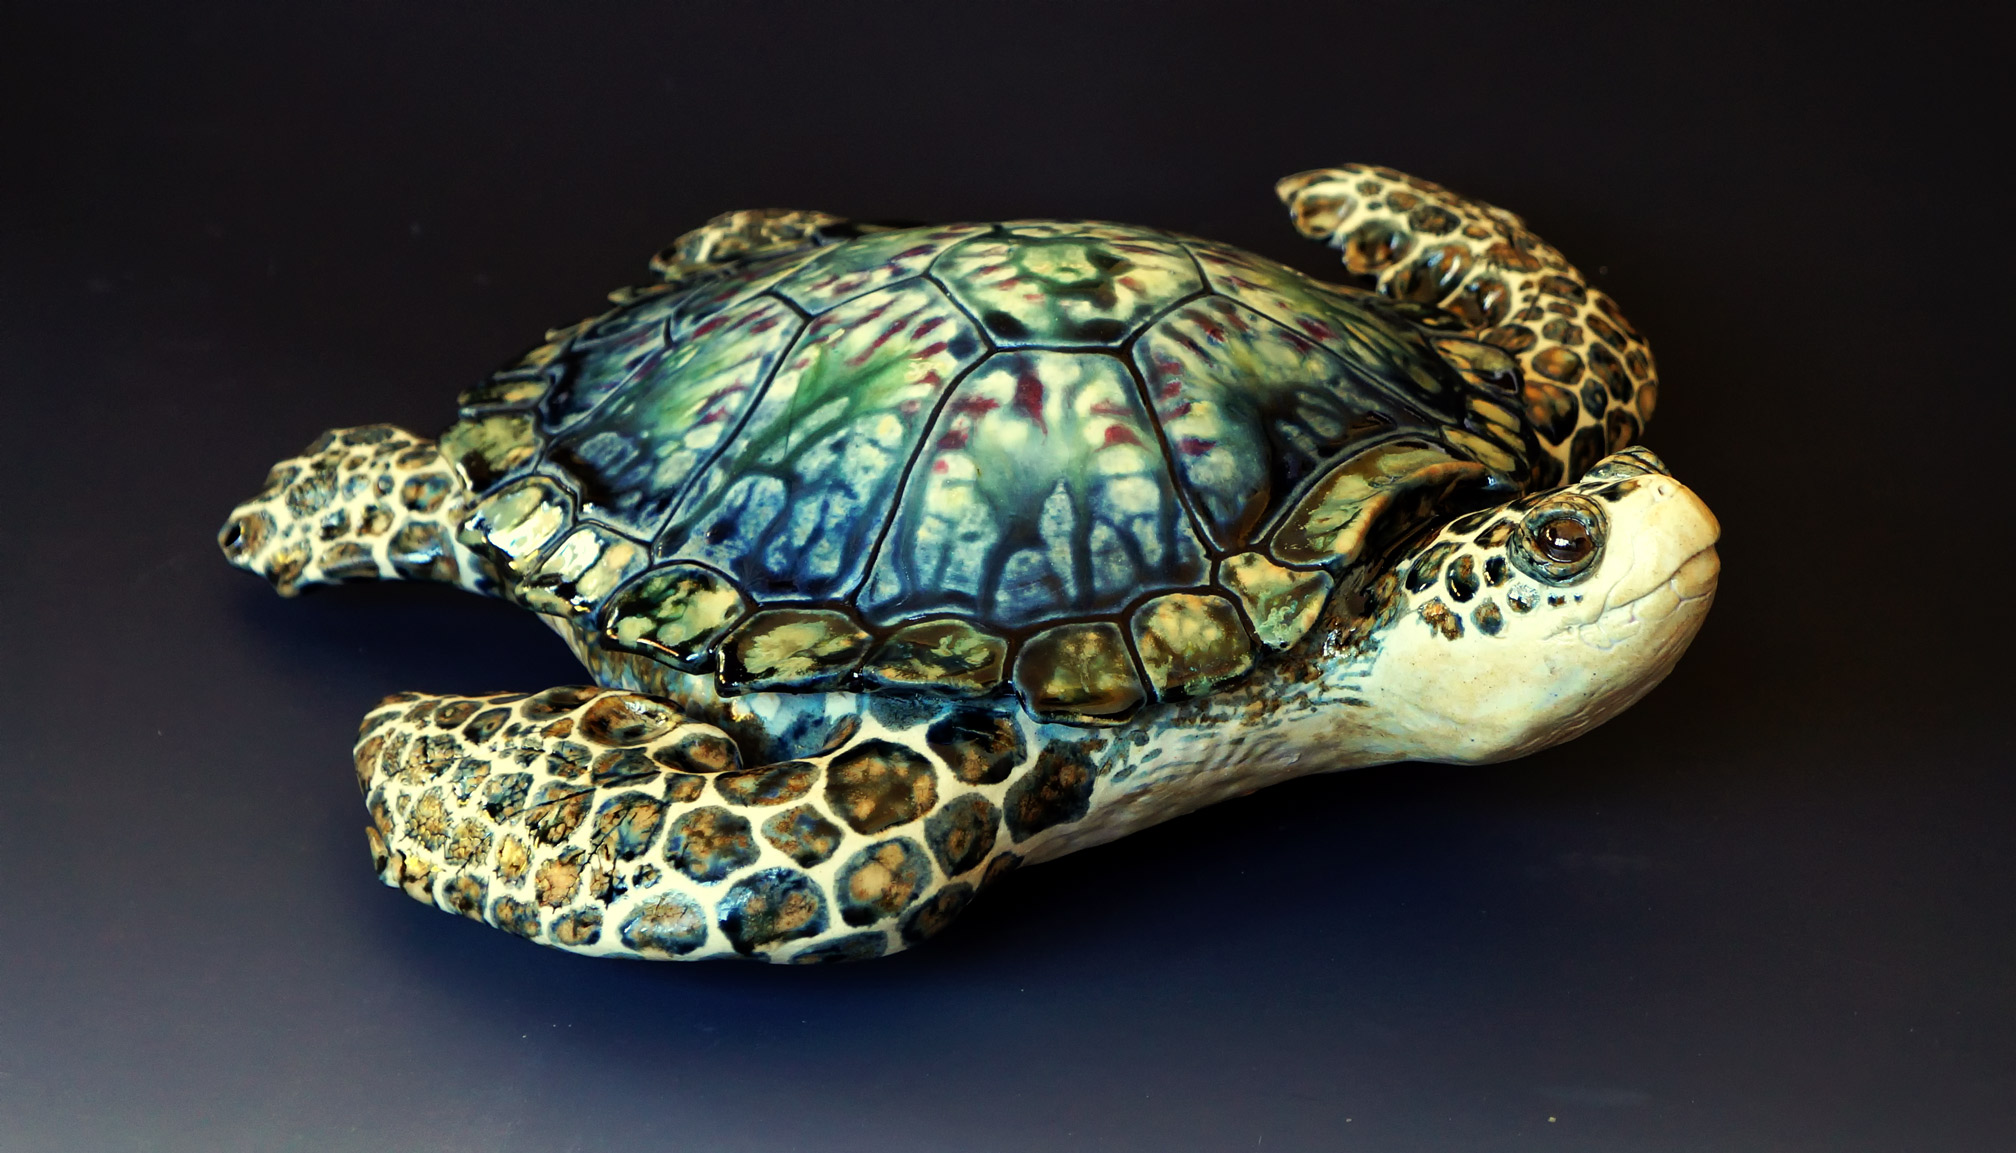 Small Full Turtle, 13 inches long.